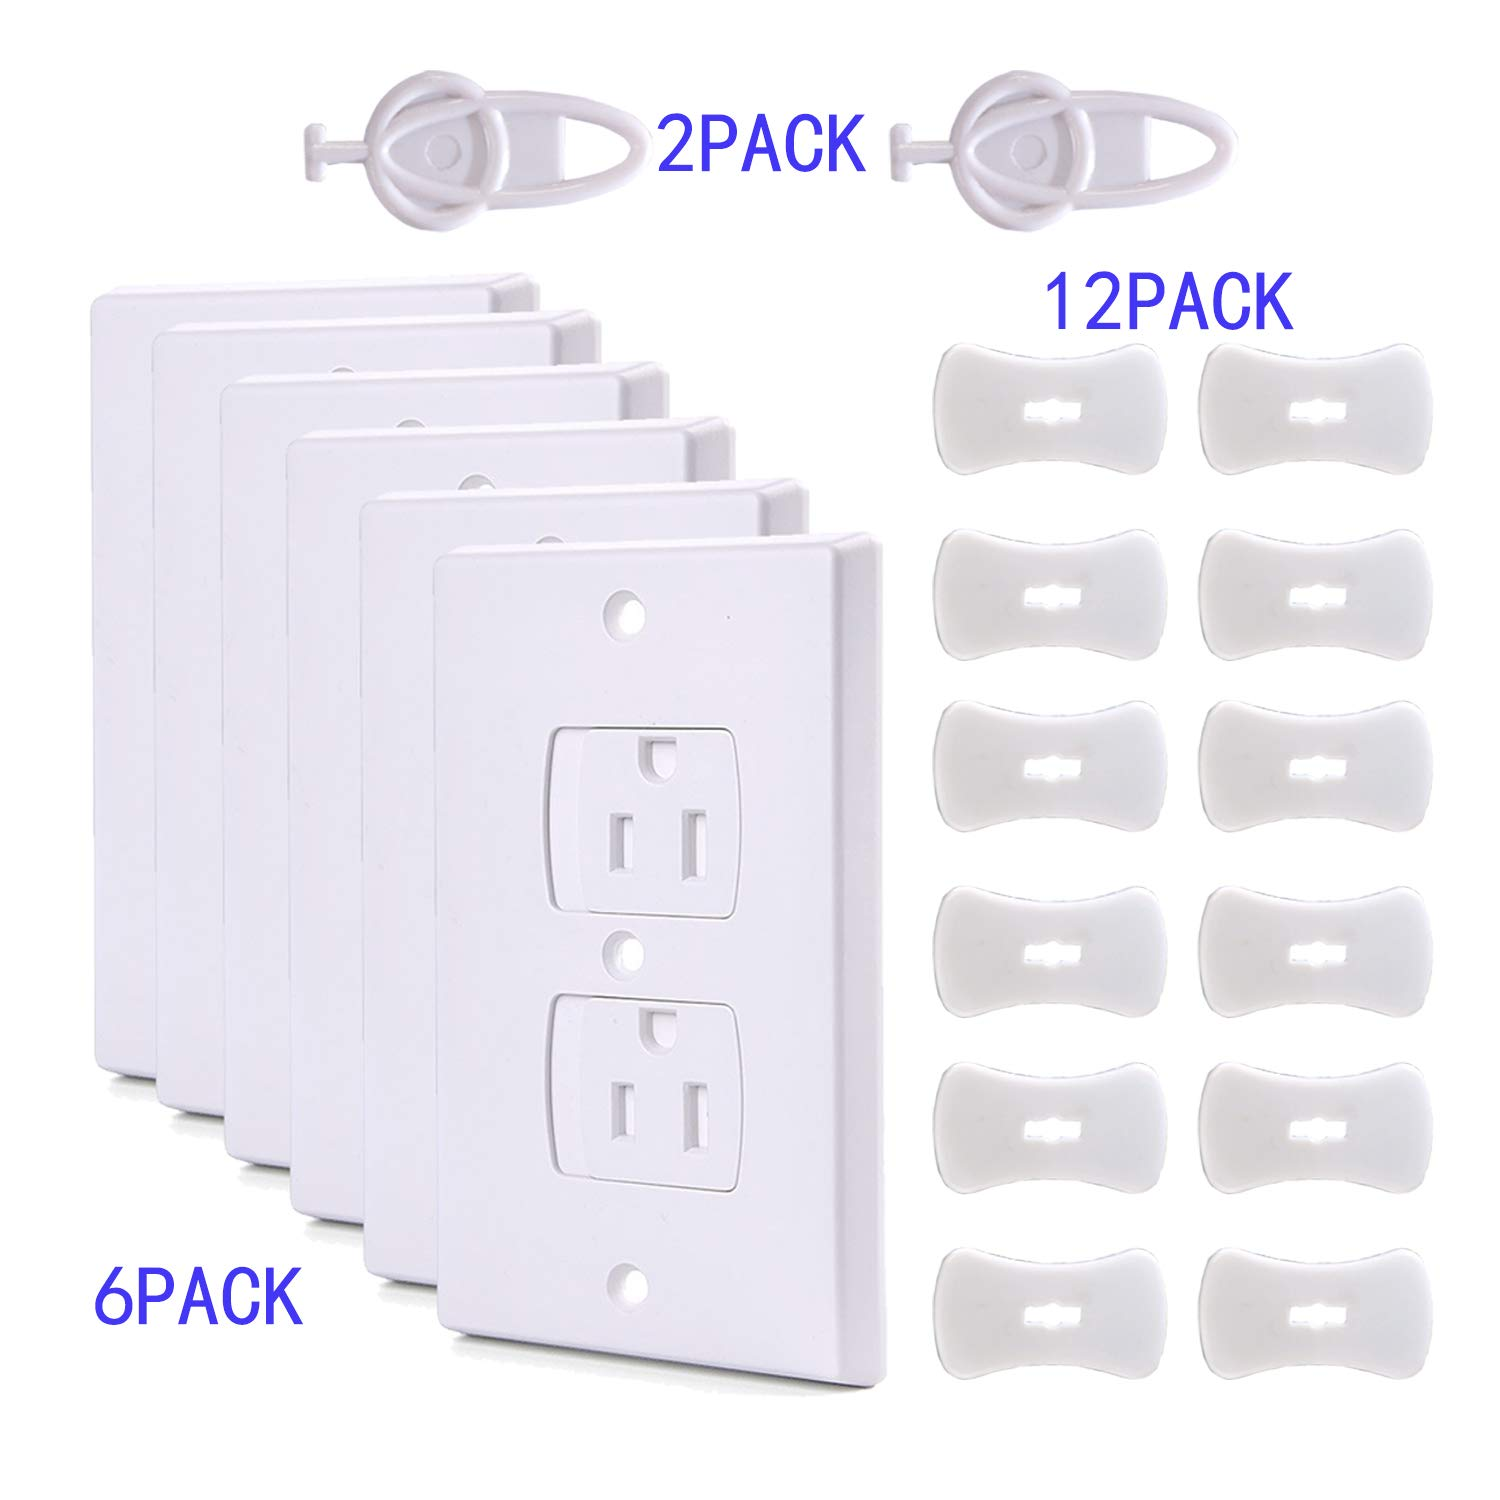 Teekland 6 Self-Closing Electric Outlet Covers and 12 Plug Covers, Outlet Protectors(2 Keys) Baby proofing Outlet Plug Covers,Electric Socket Covers for Child Proofing